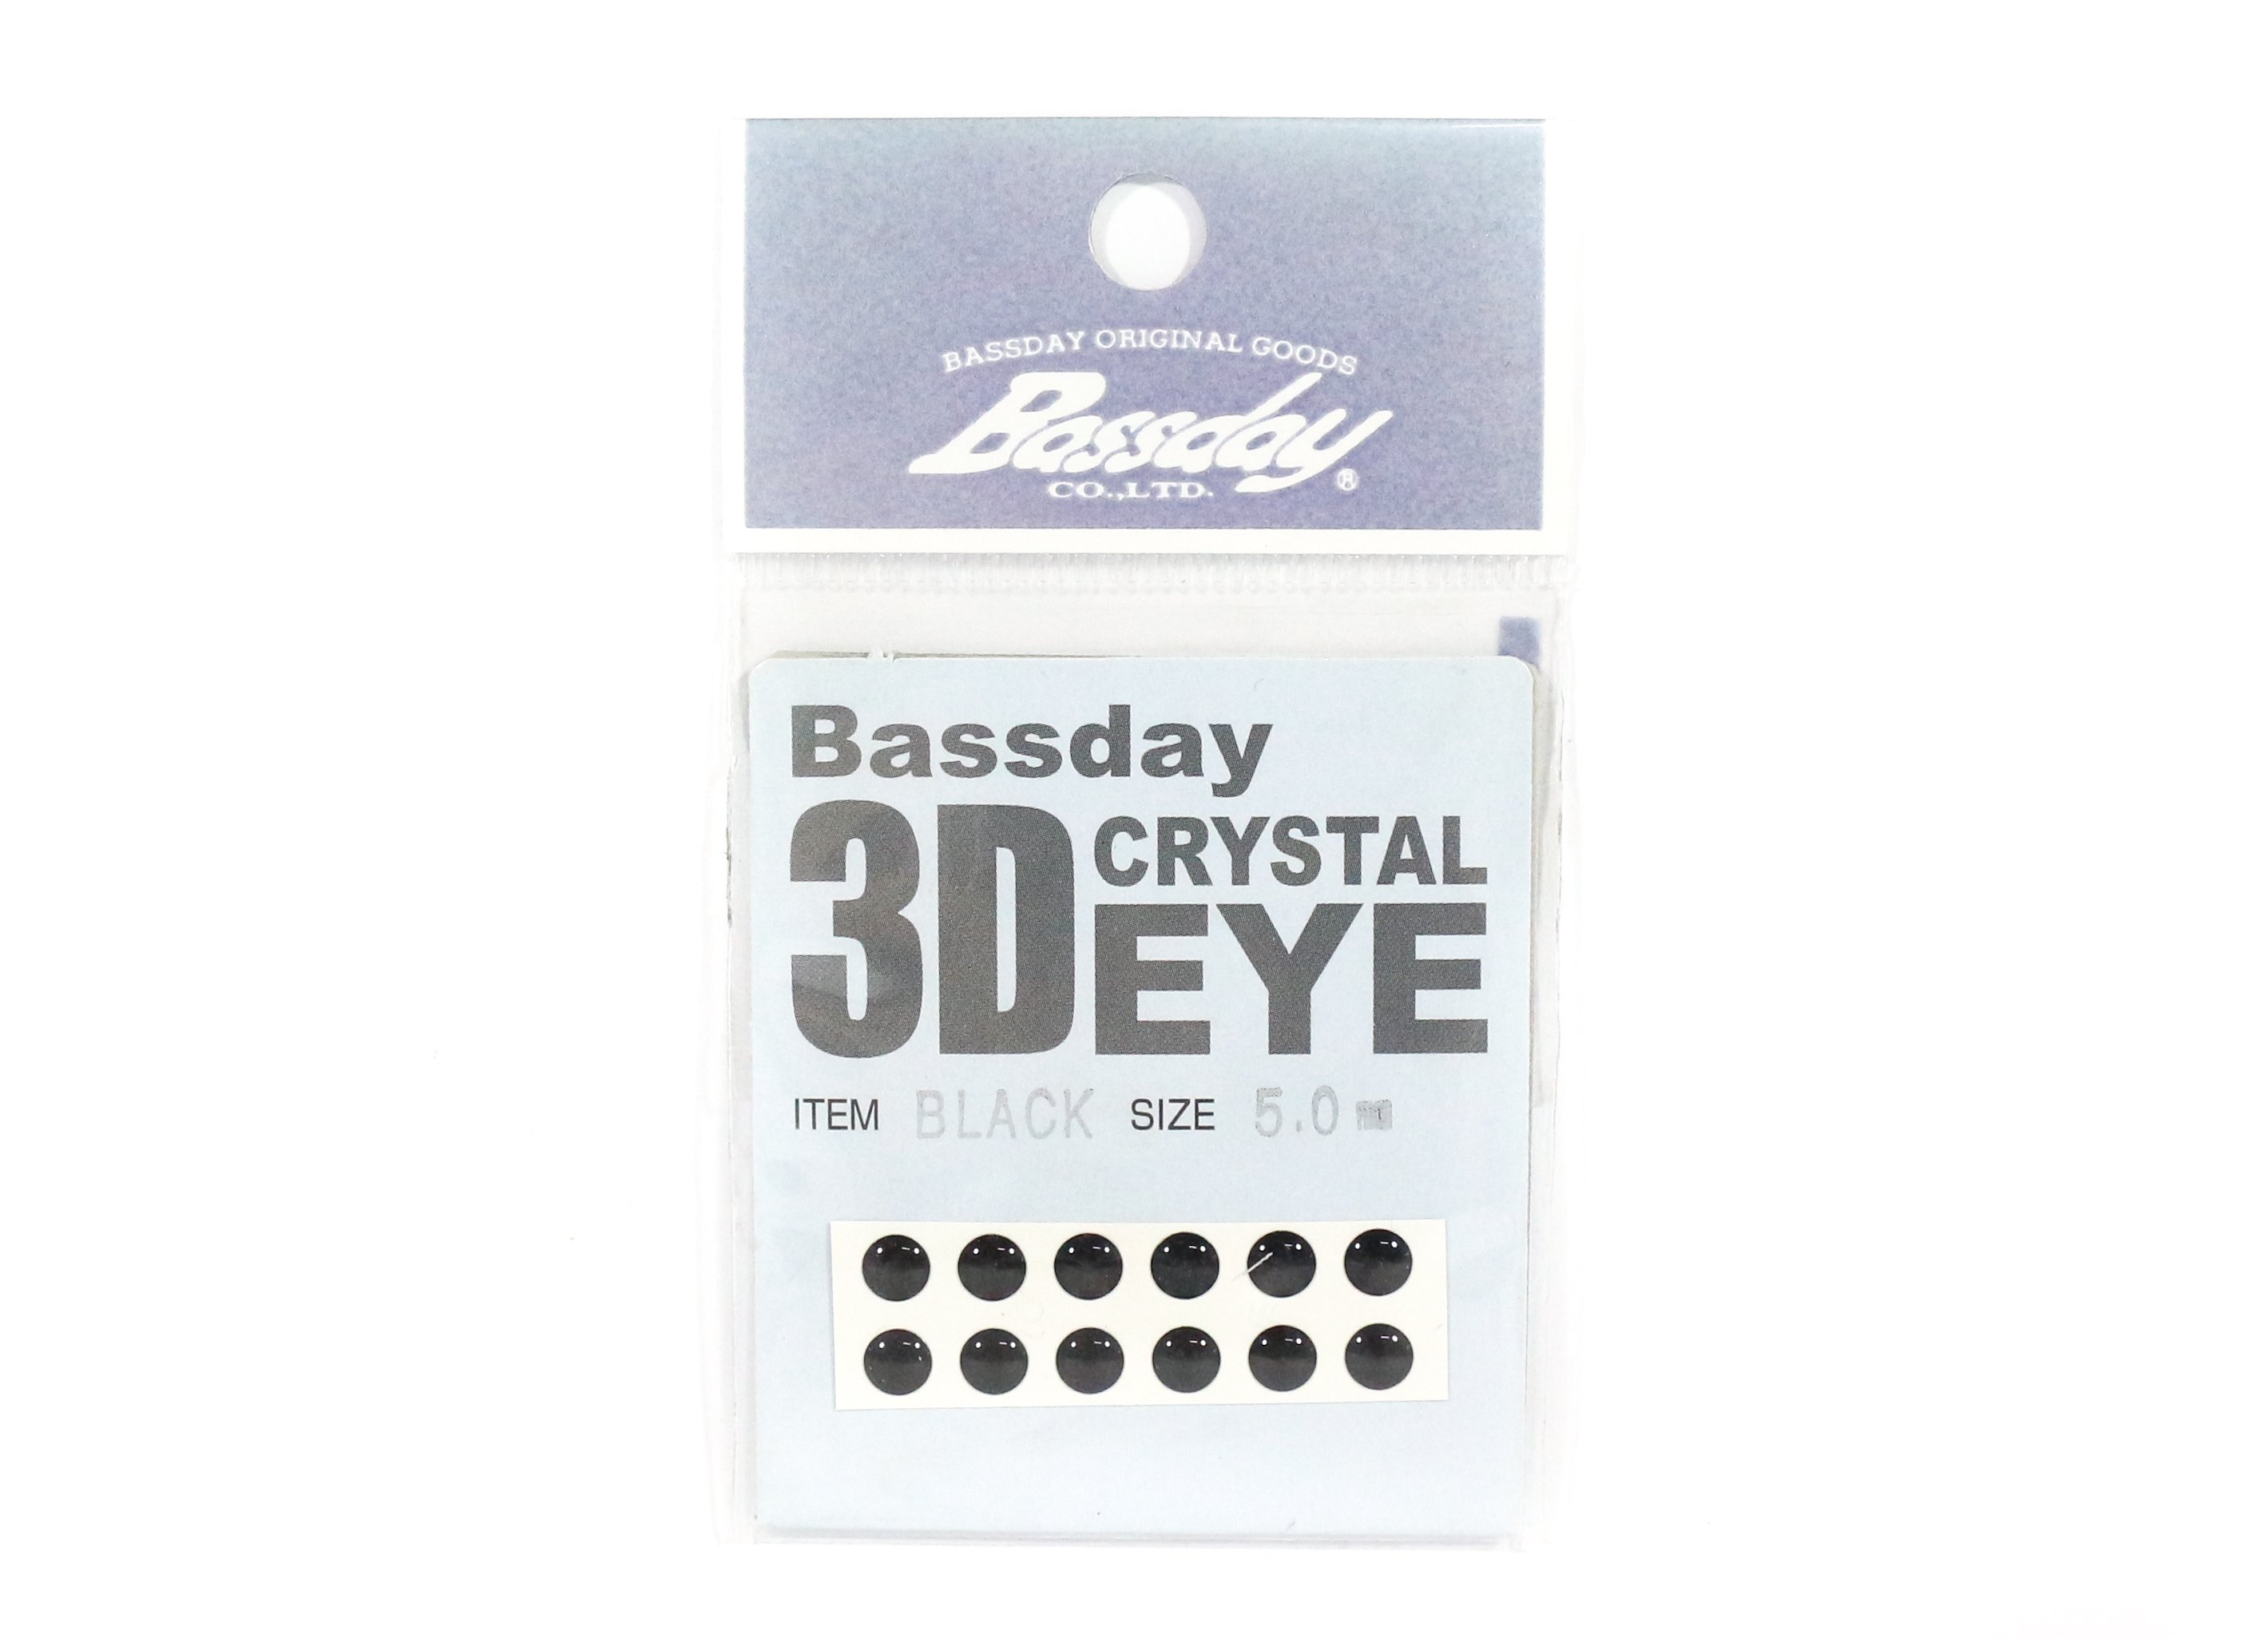 Bassday Live Eye Accessory Diameter 5mm Black (8245)